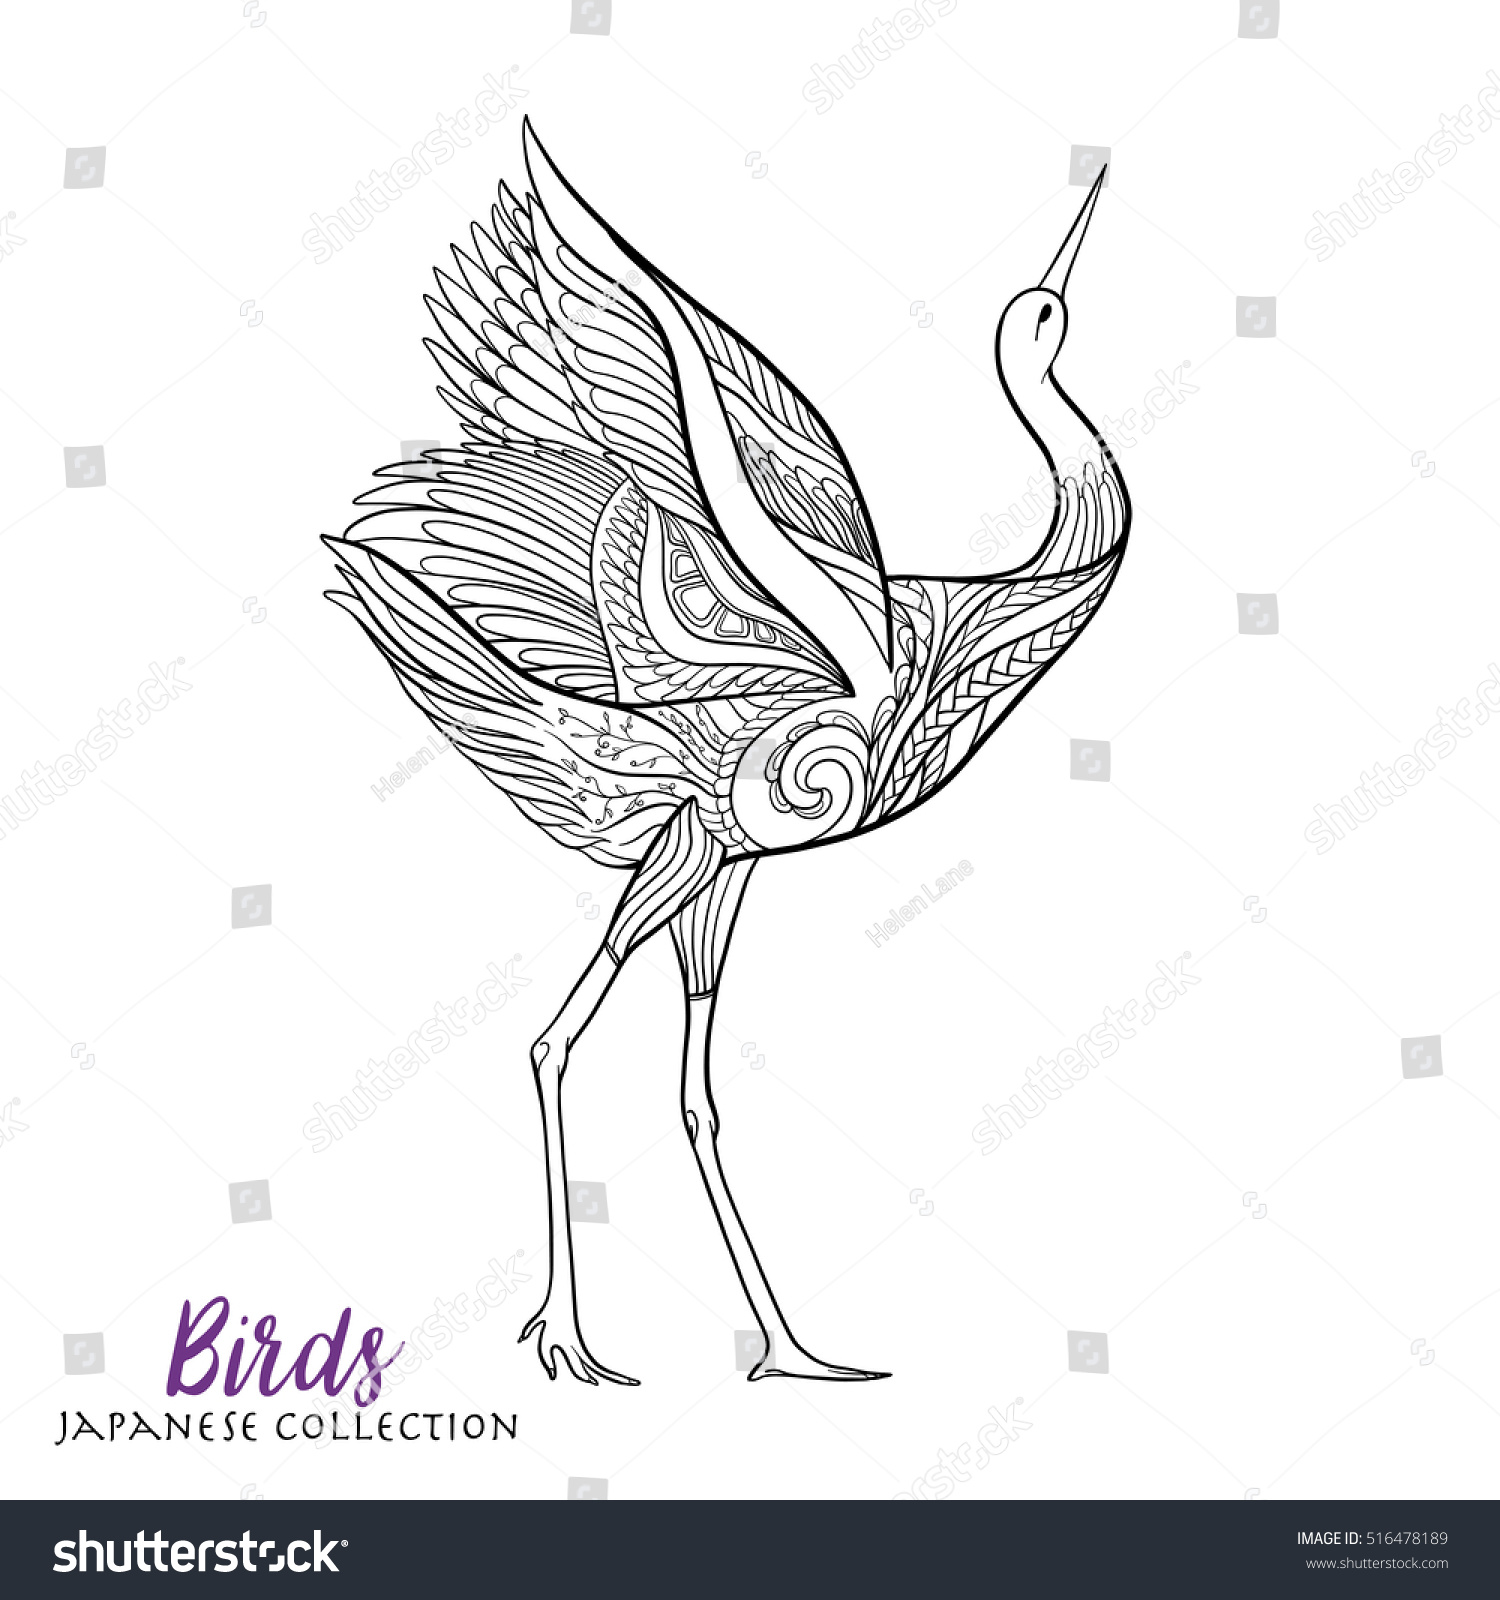 japanese crane coloring book outline stock vector 516478189